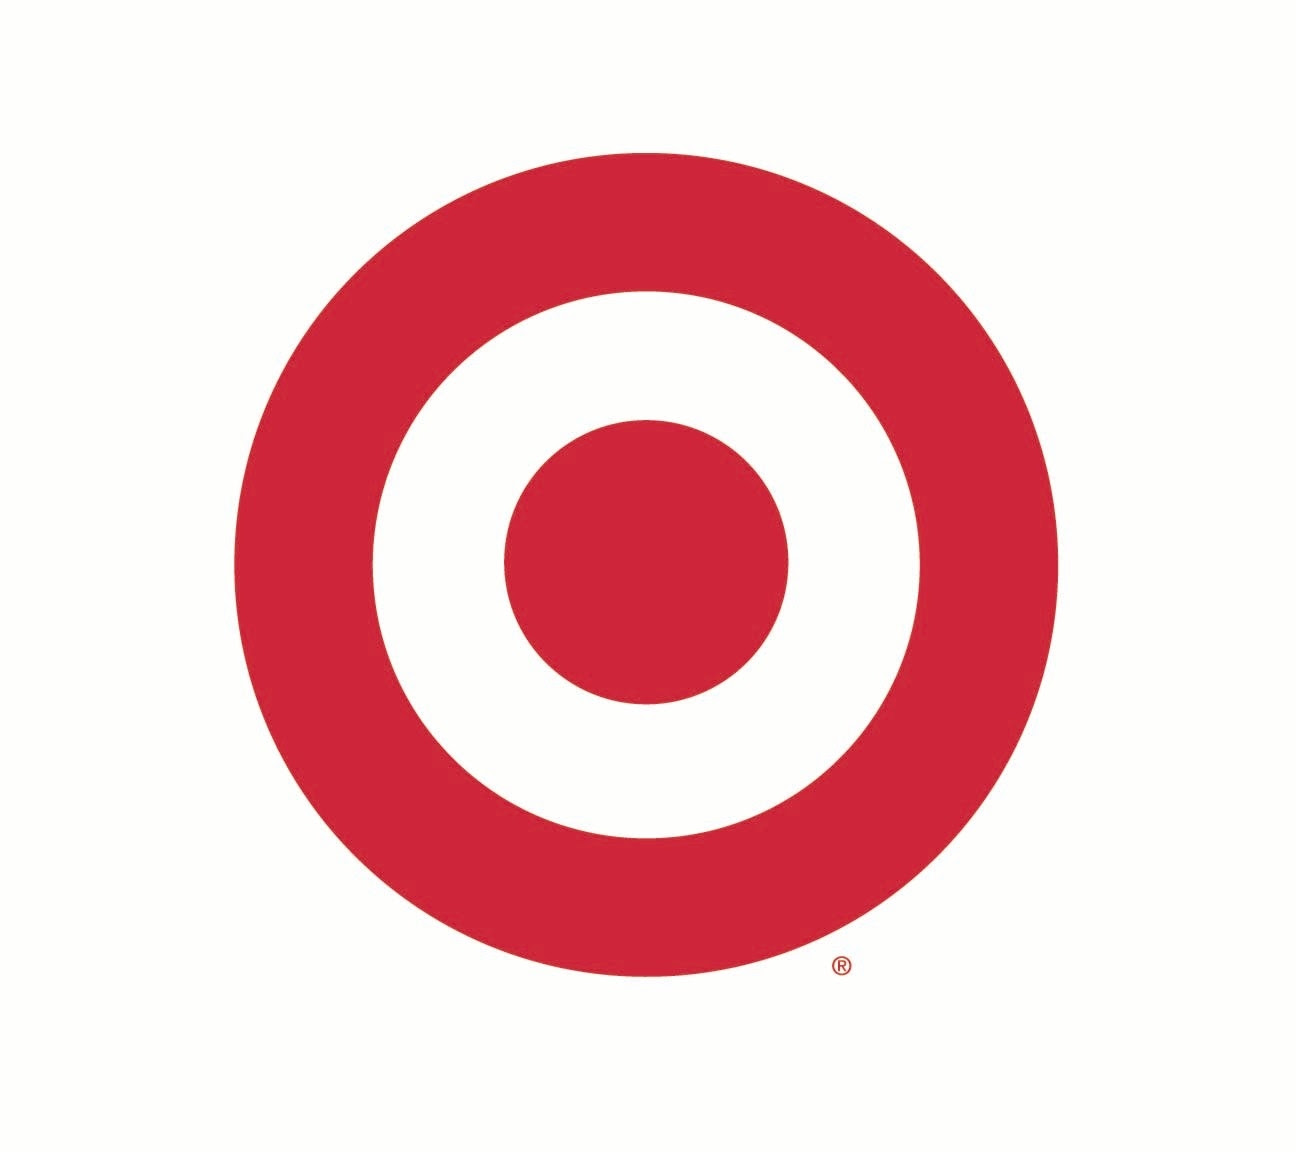 Picture Of Target Logo - ClipArt Best